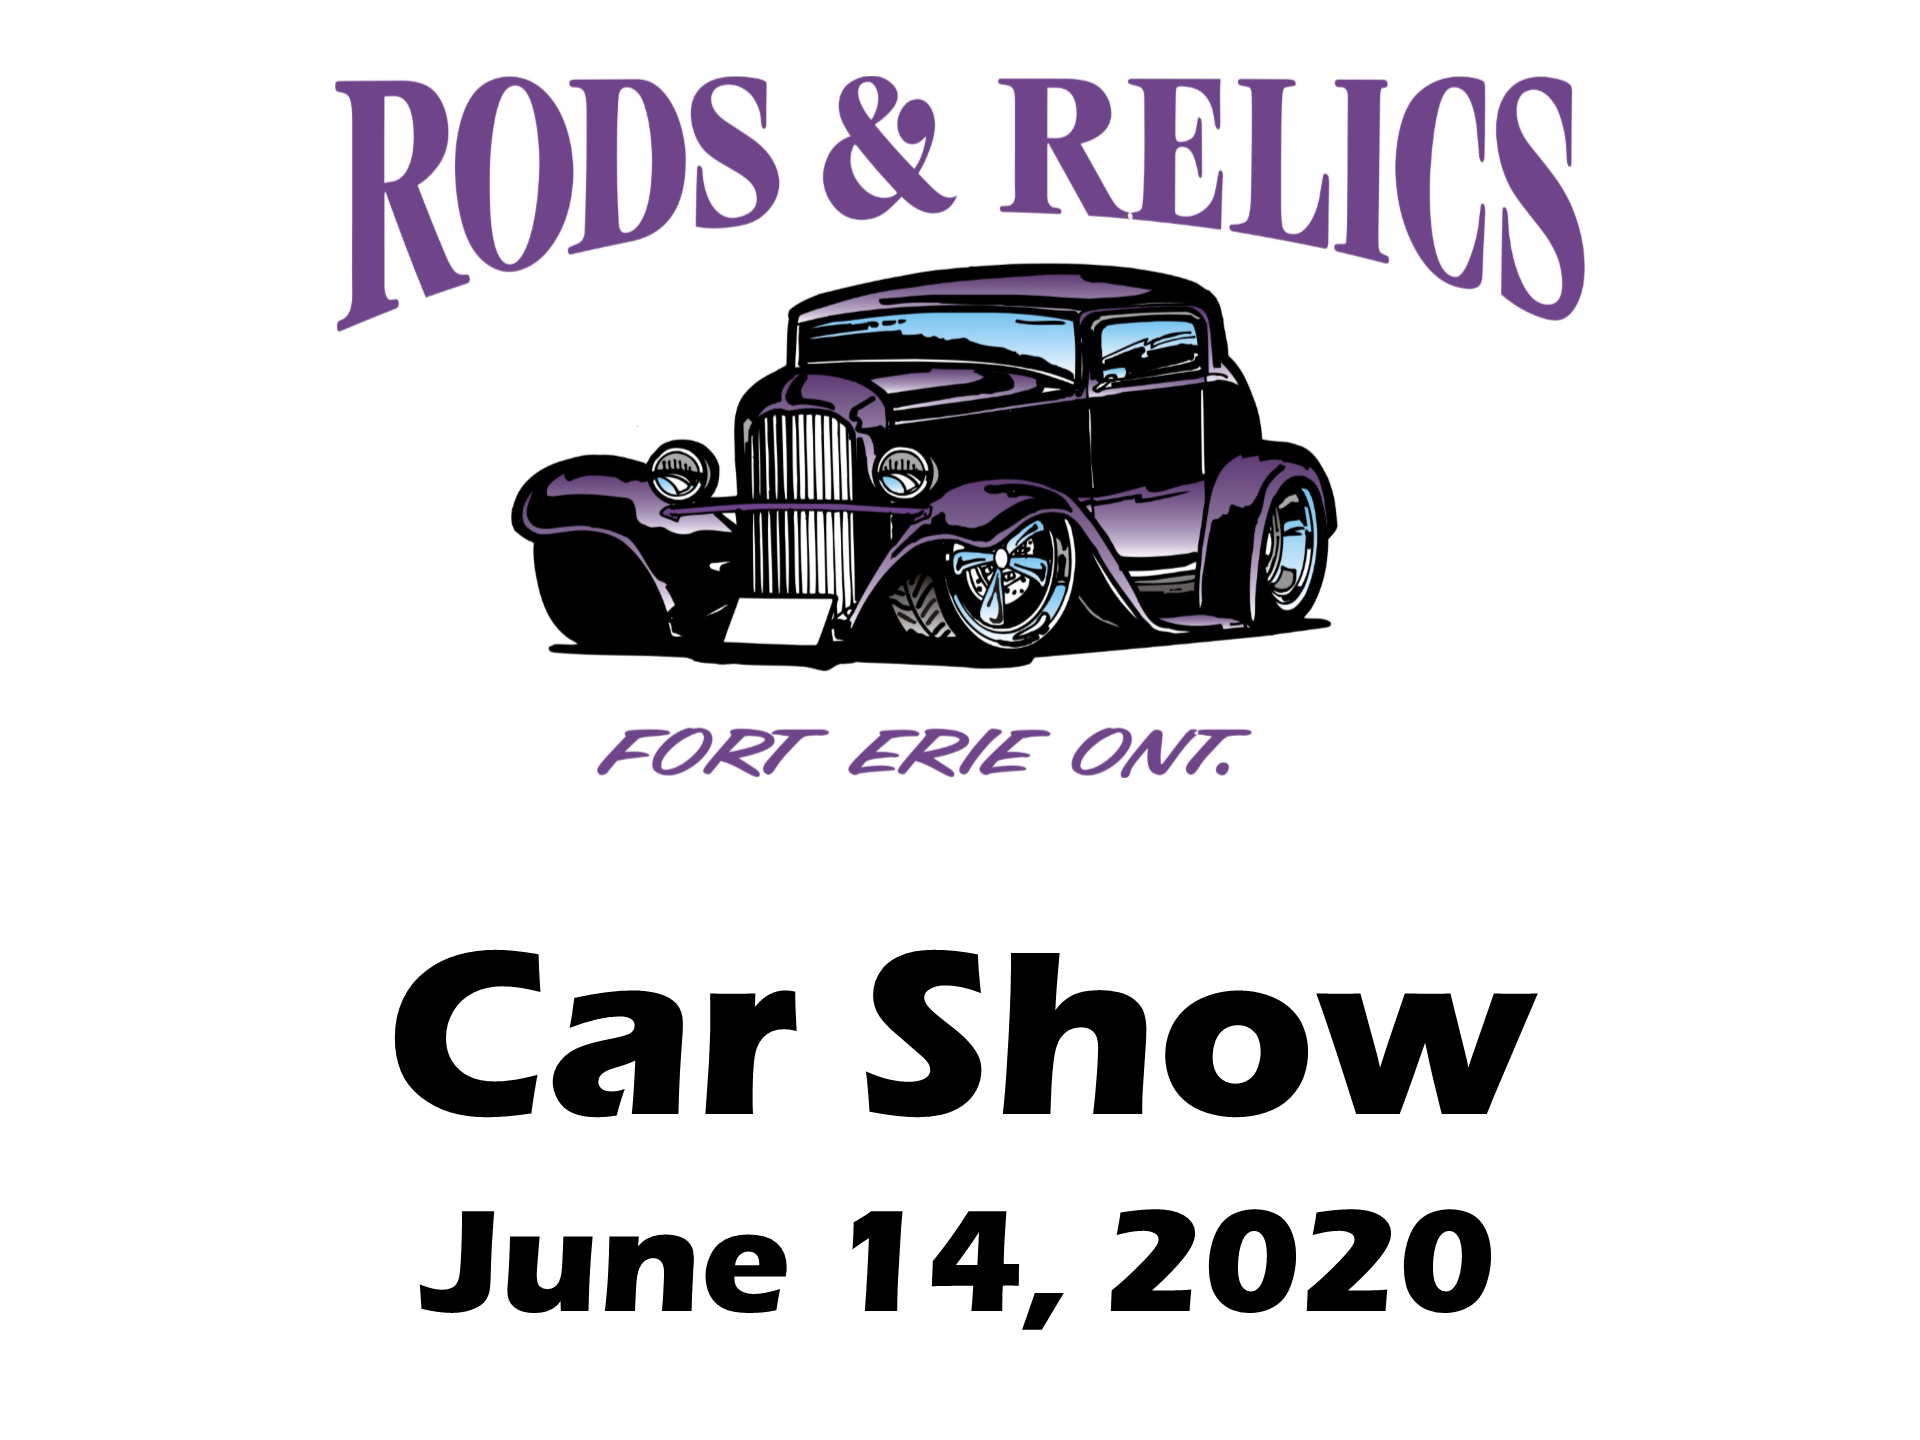 000-CarShowTitle-2020